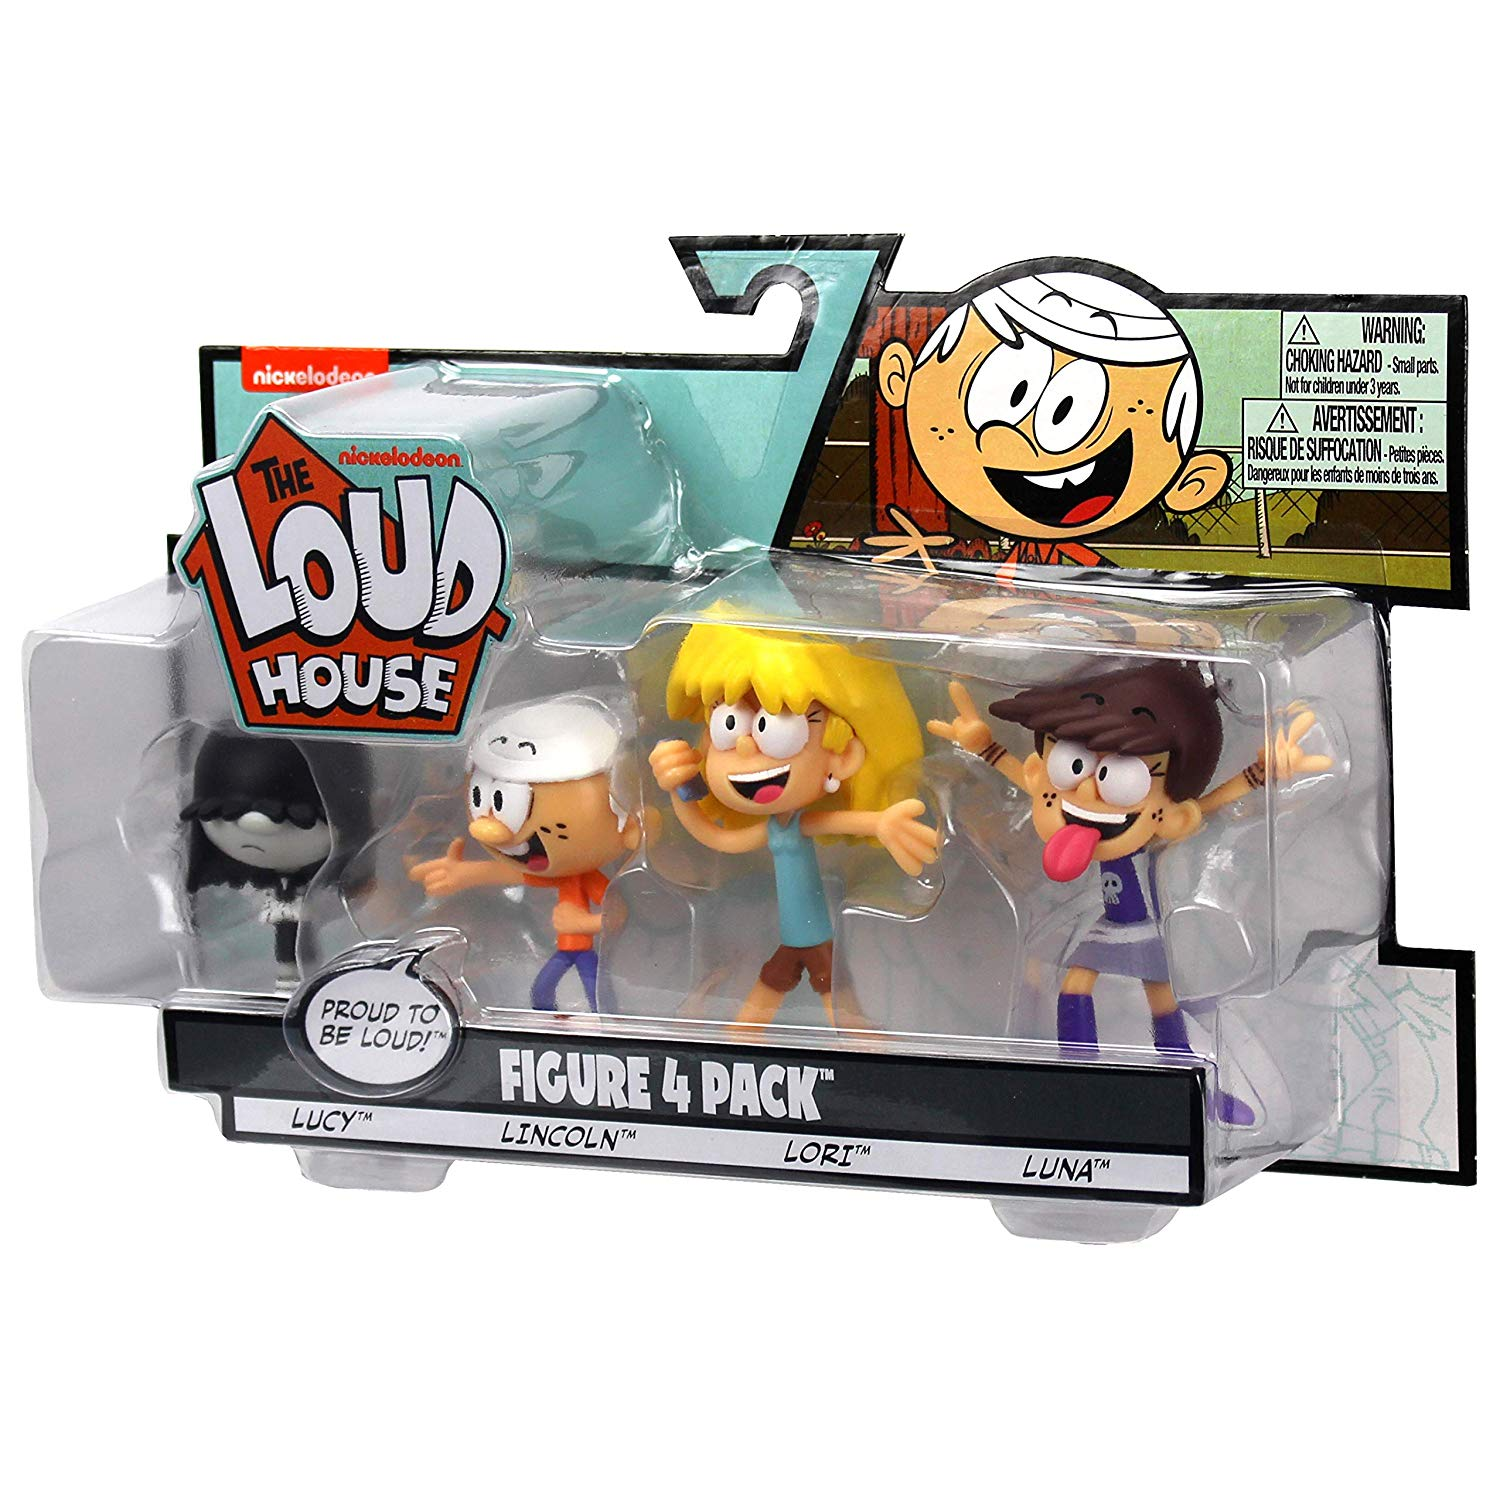 loud house on JumPic com